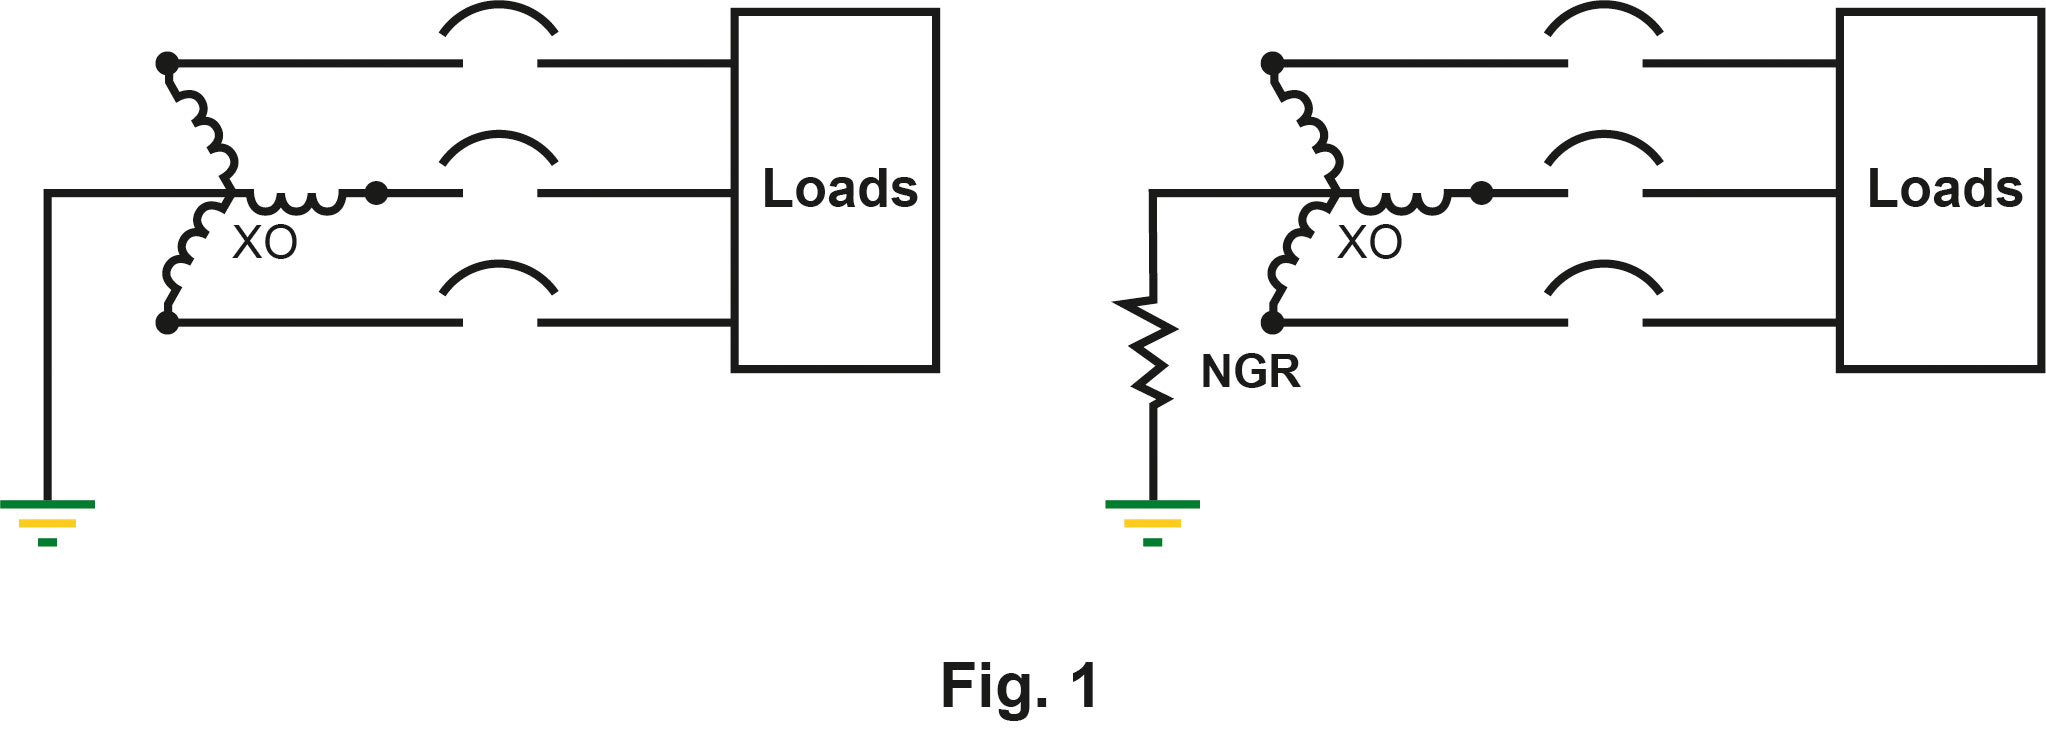 Grounding system with/ without NGR